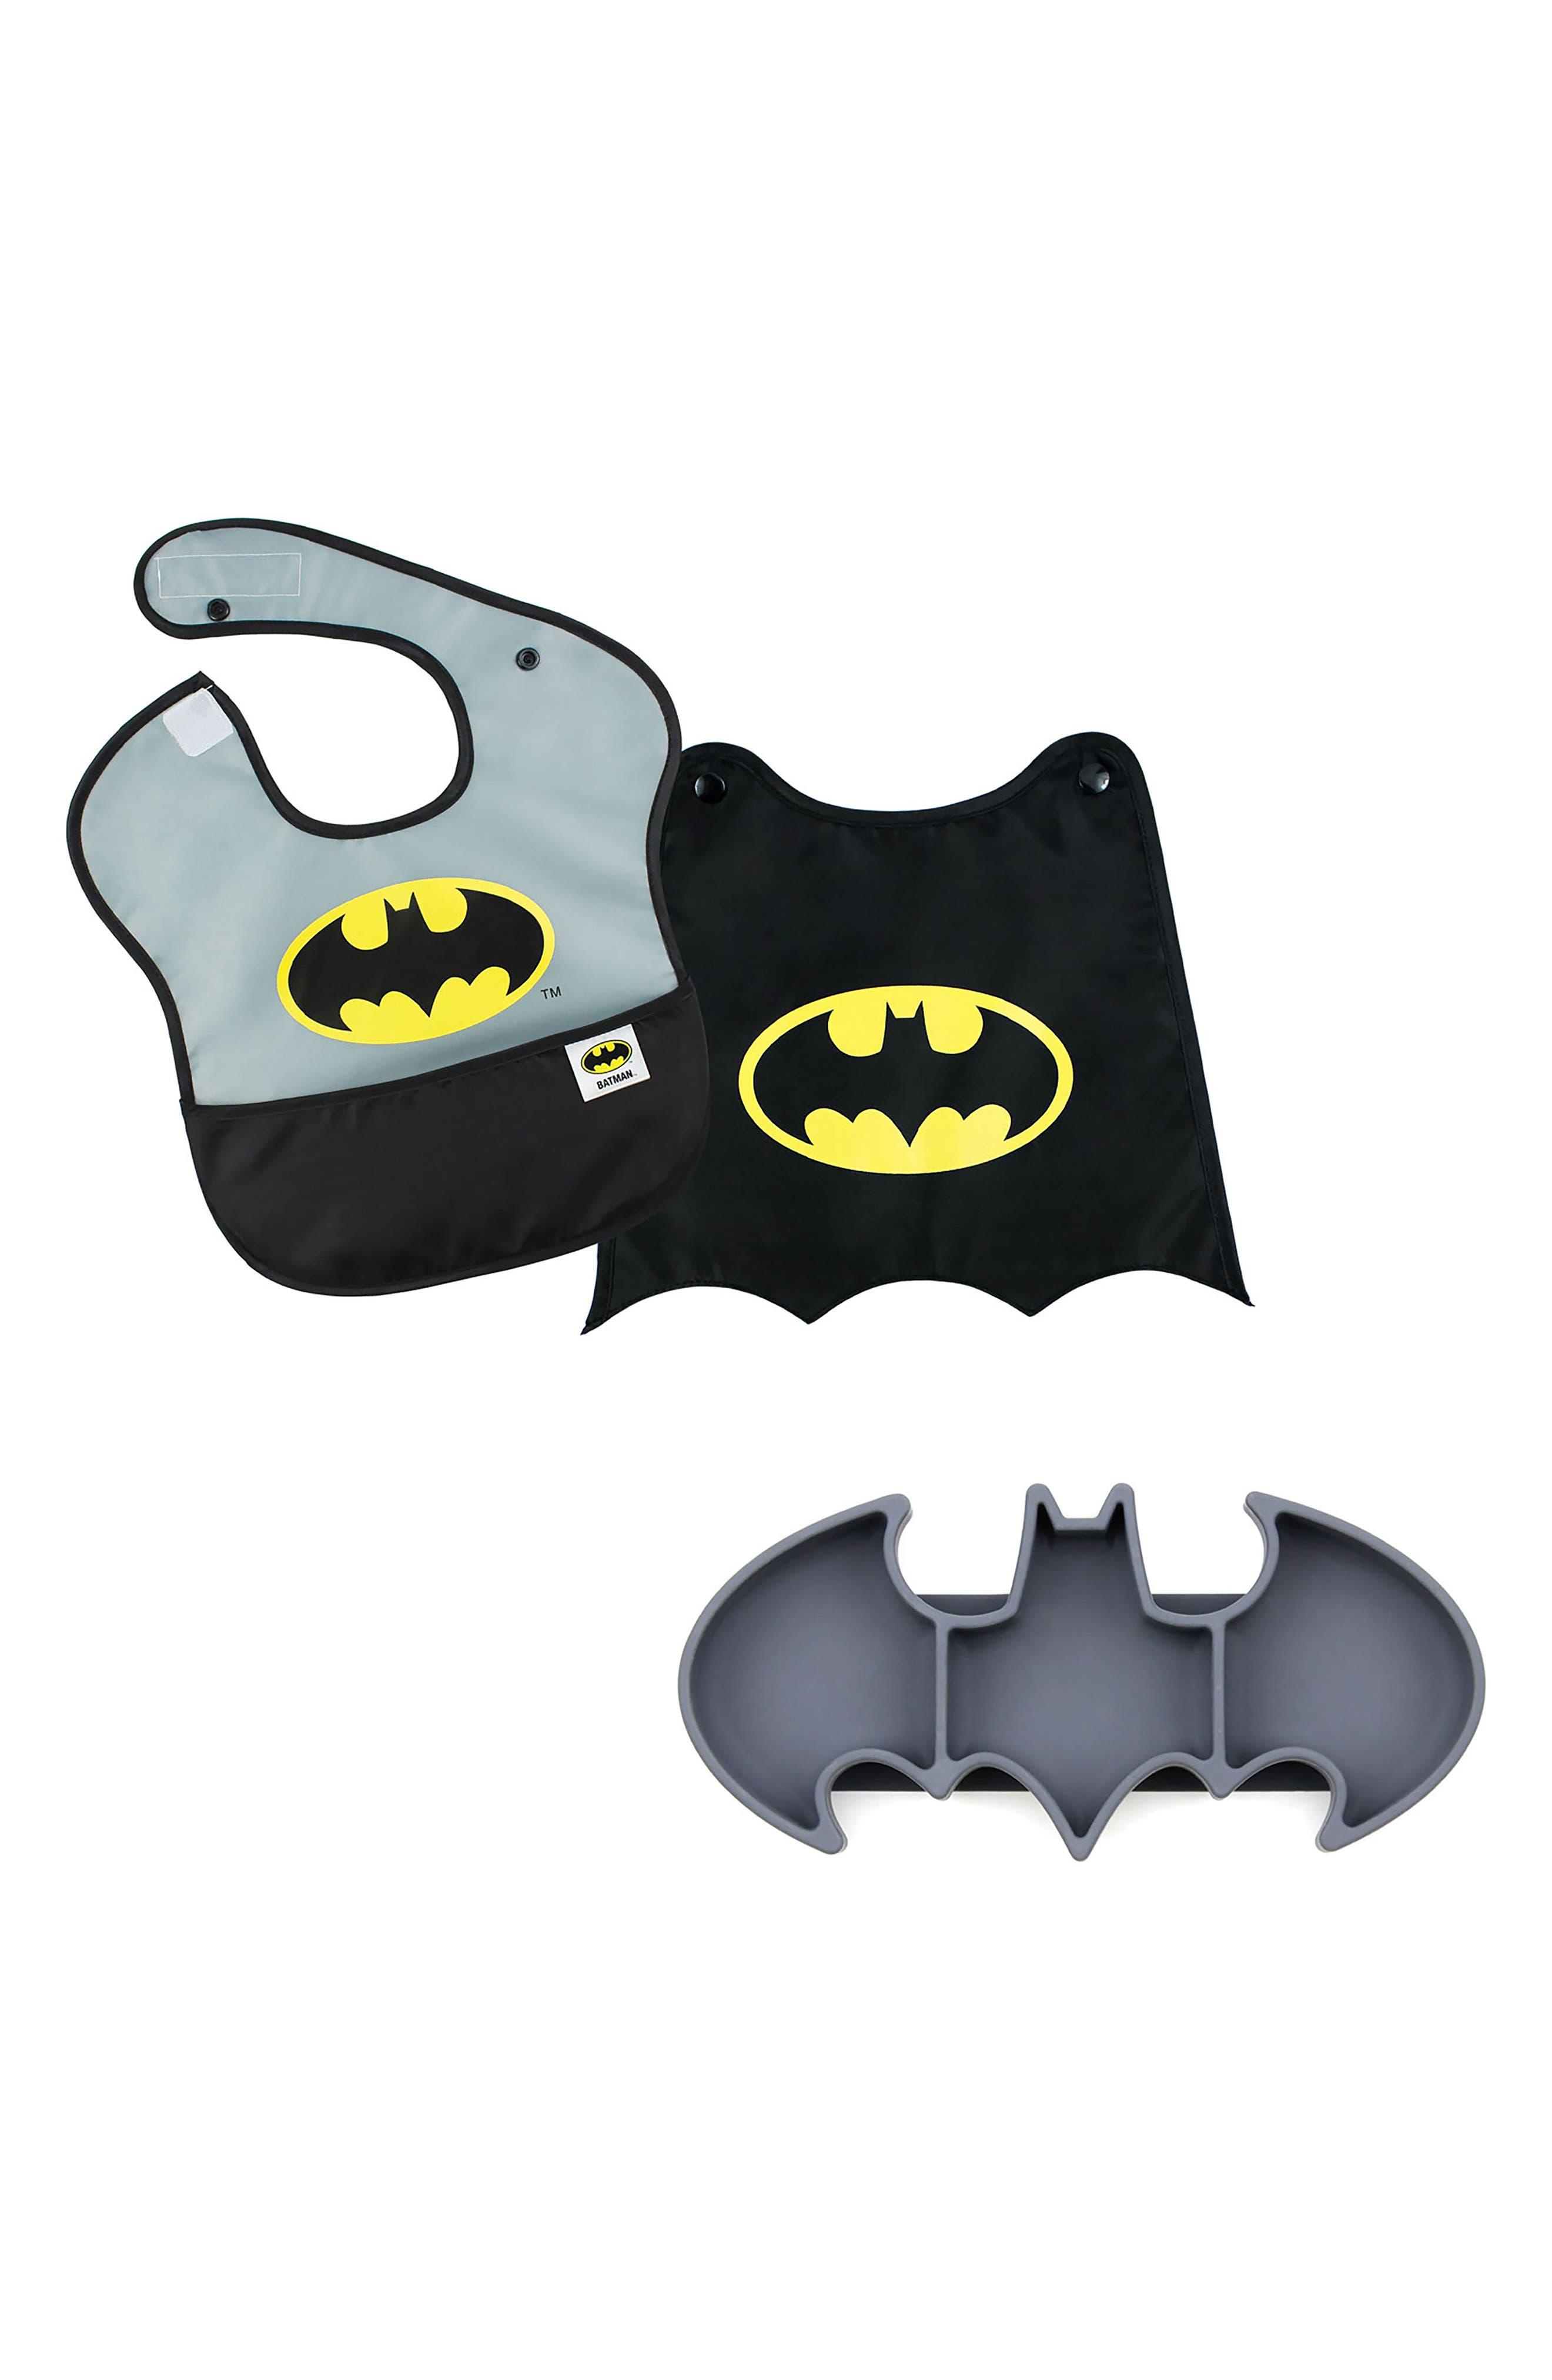 Batman Grip Dish & Caped SuperBib Set,                         Main,                         color, 001